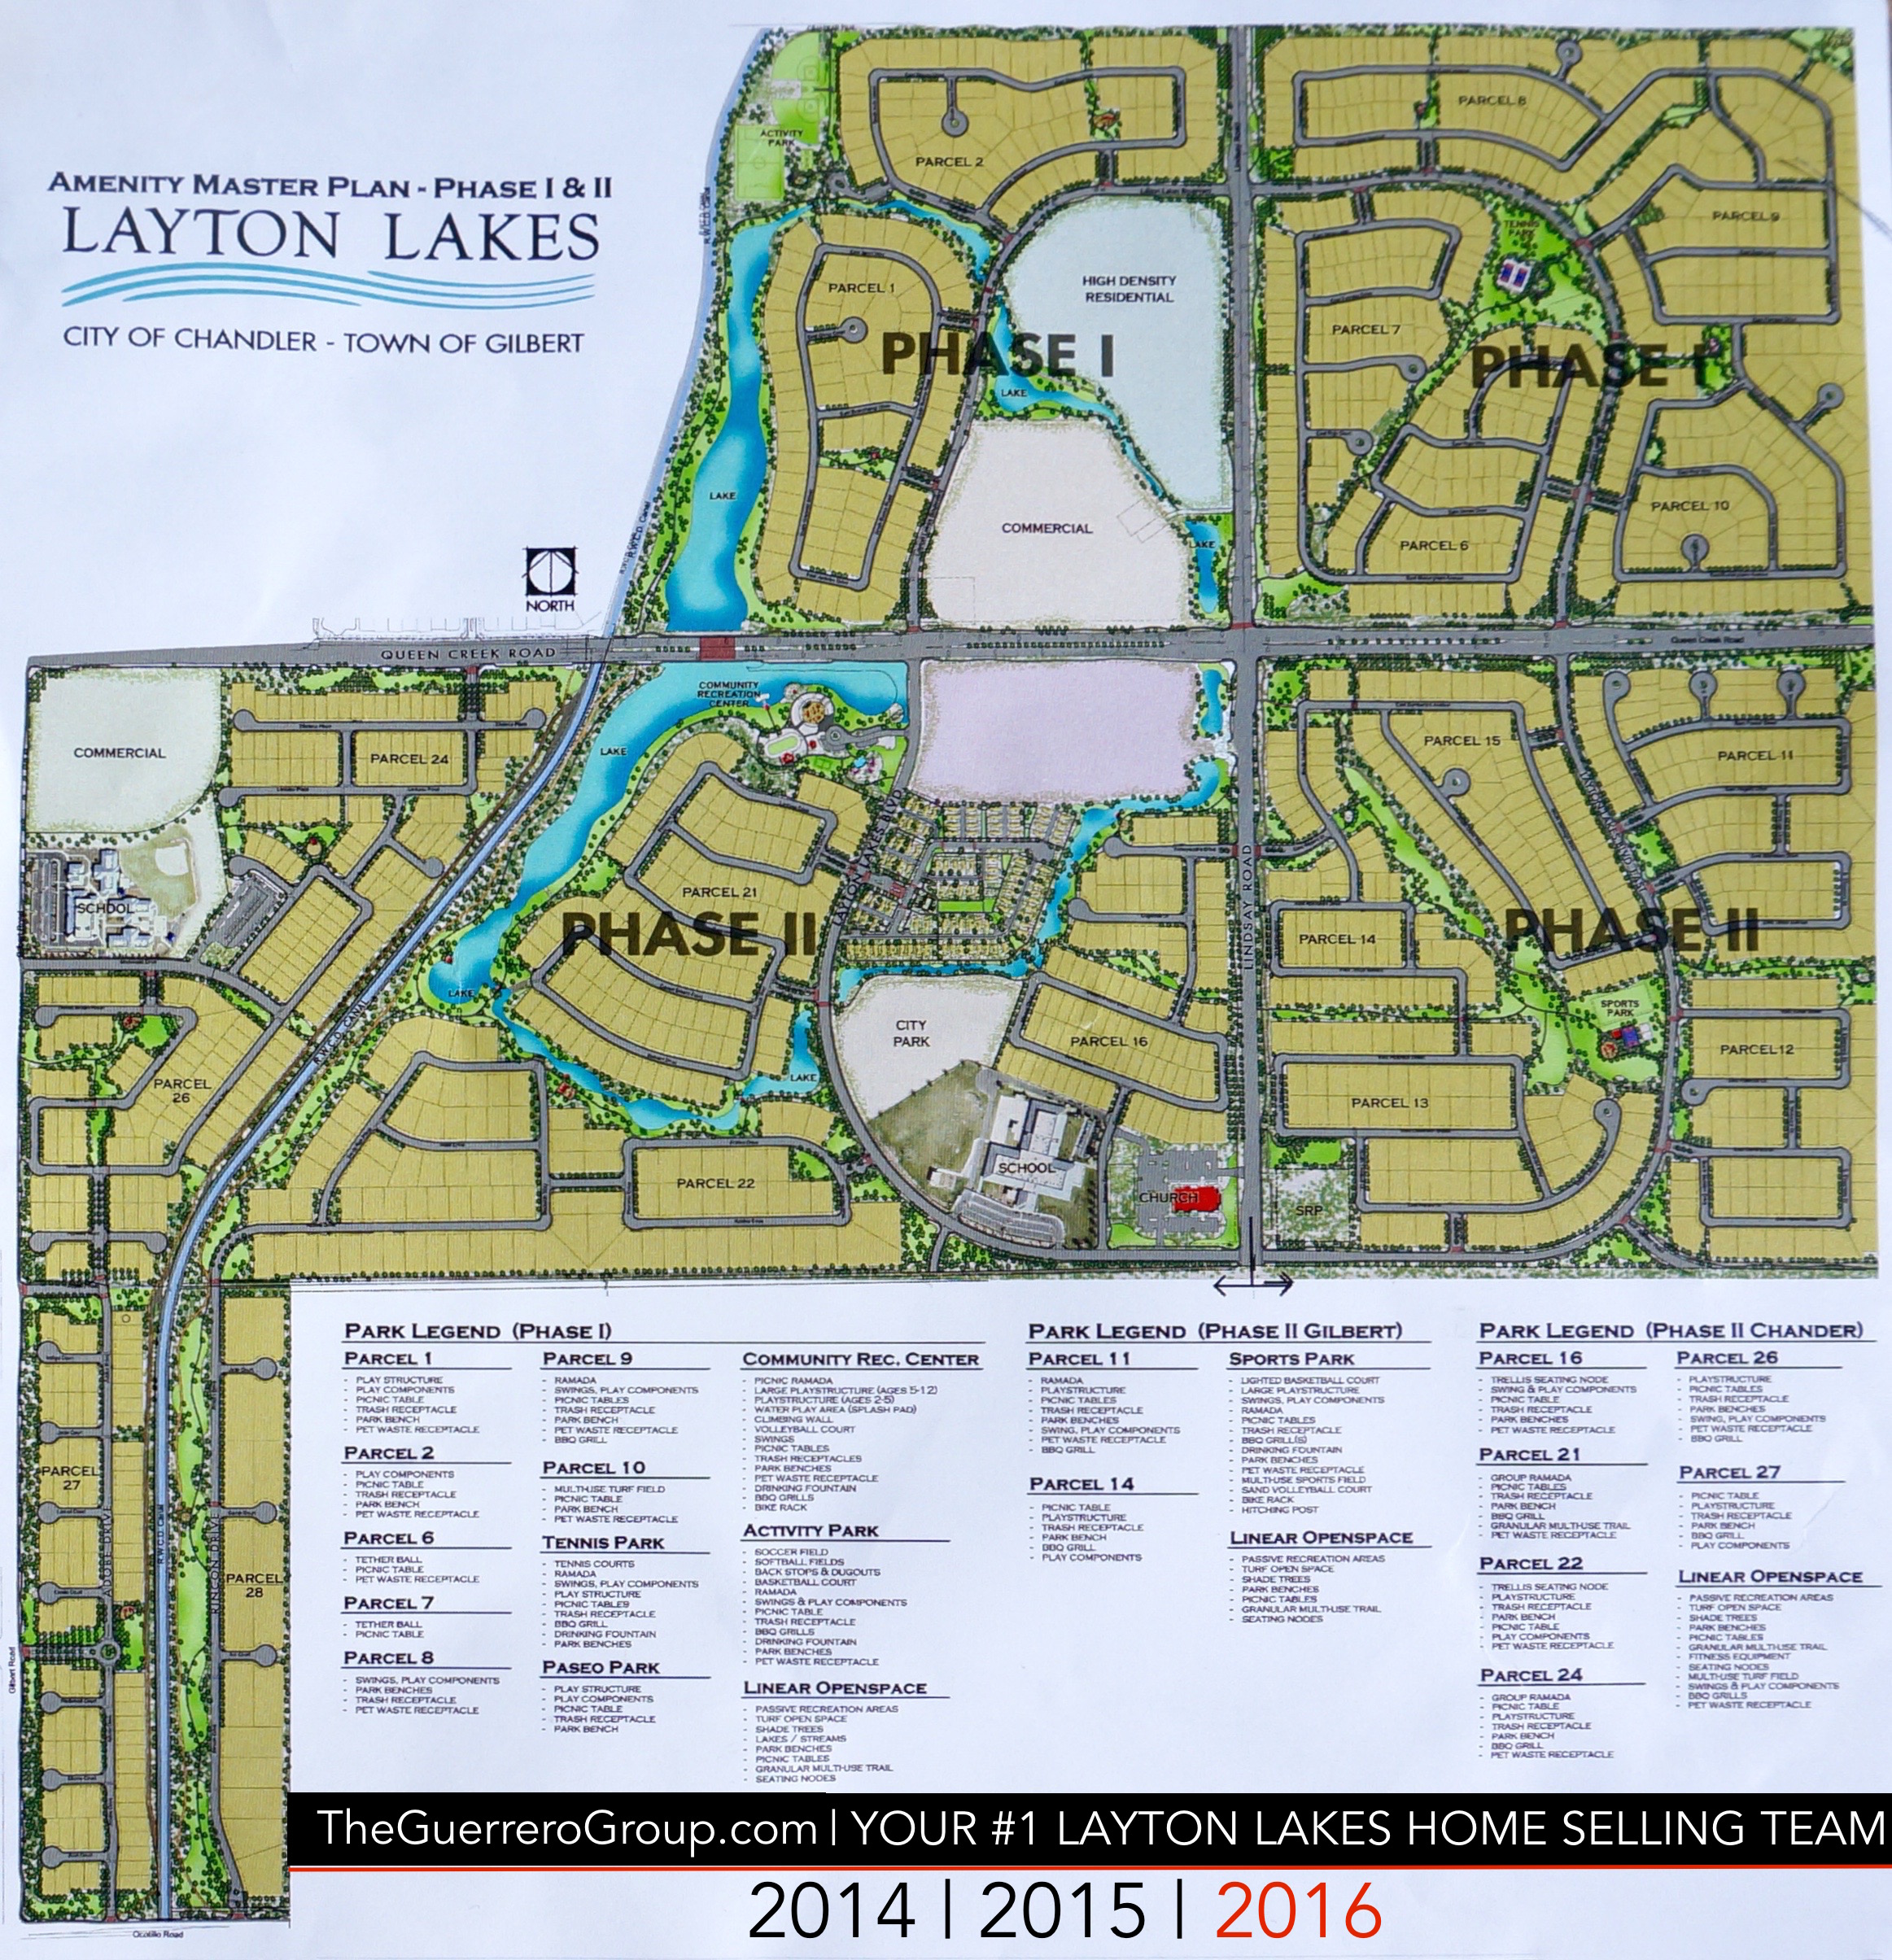 Layton Lakes Community Maps Photos The Guerrero Group